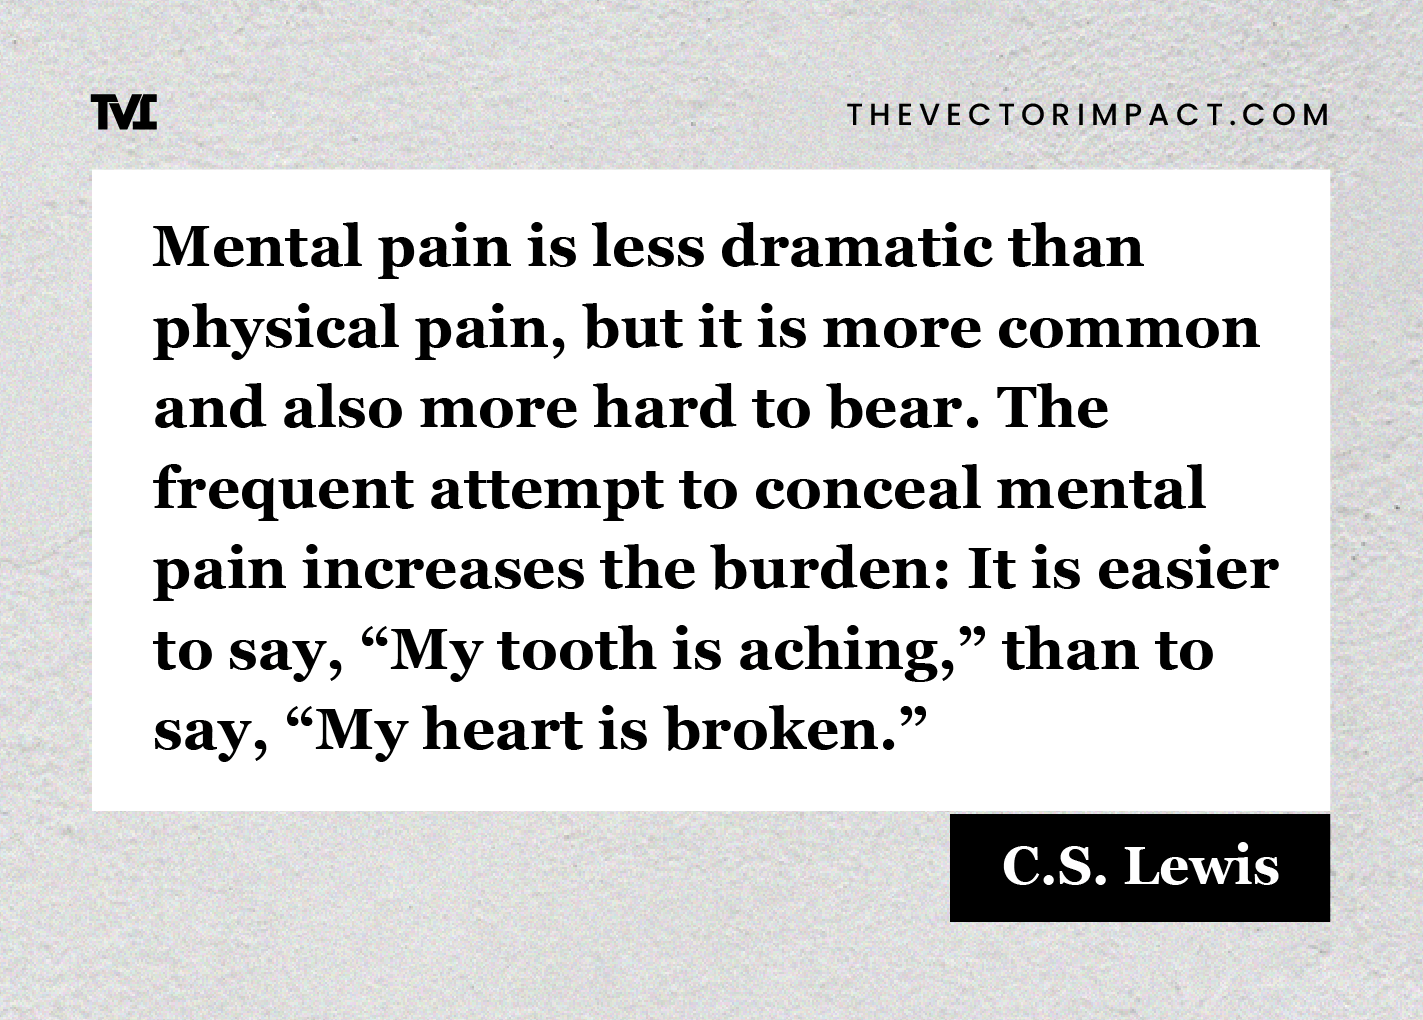 C.S. Lewis quote about depression graphic